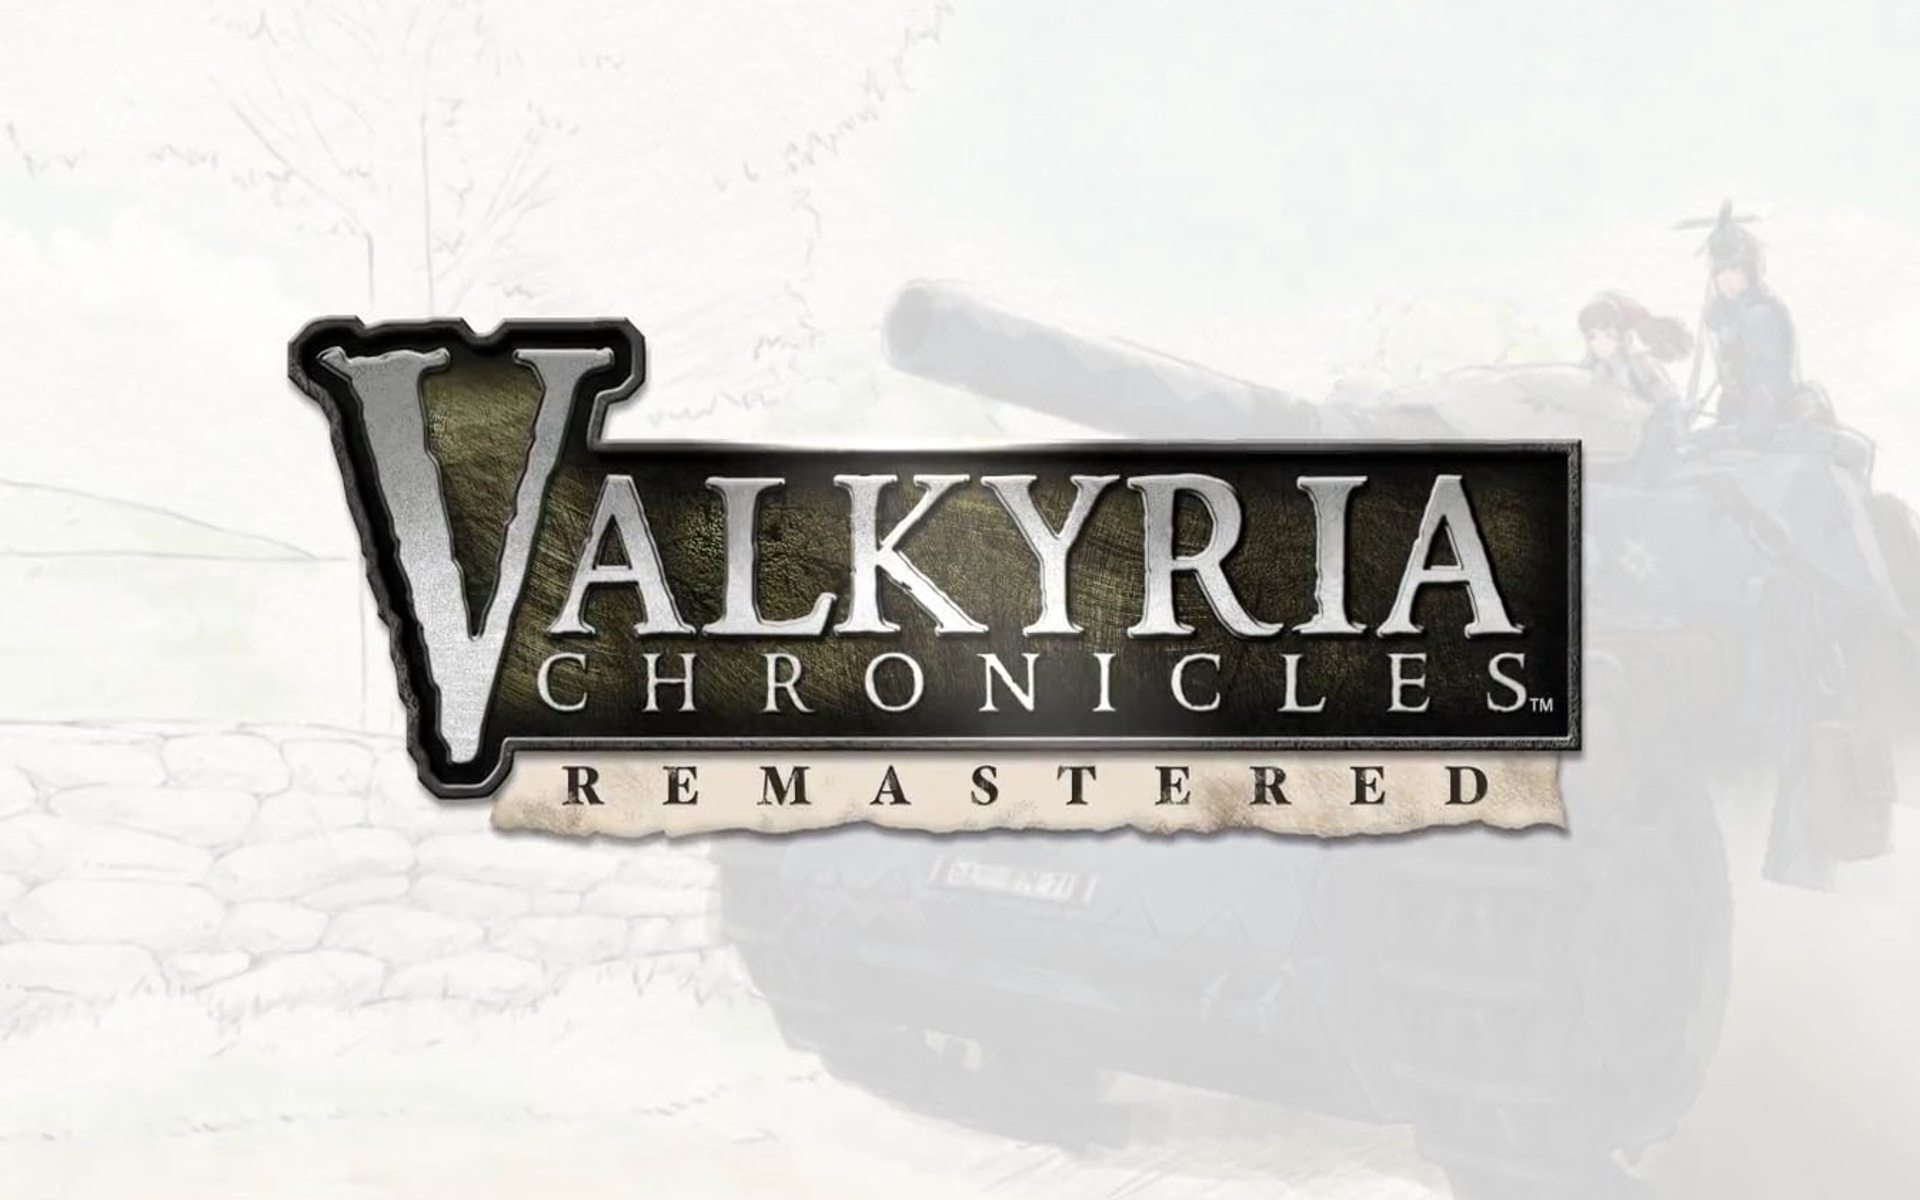 Valkyria Chronicles Remastered Logo